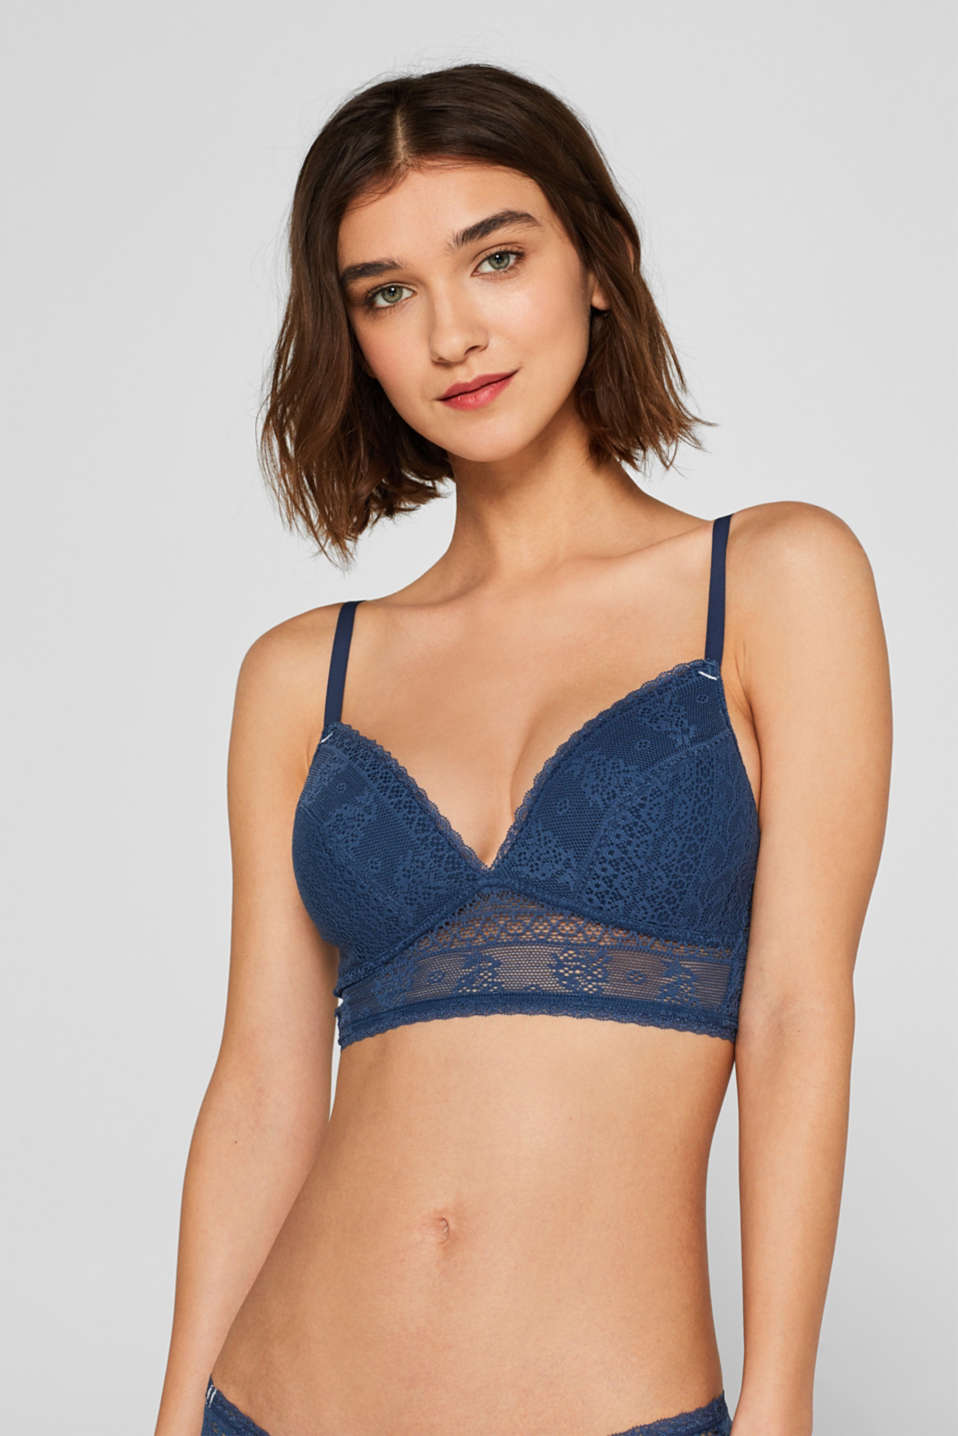 Esprit - Padded bra made of decorative crocheted lace